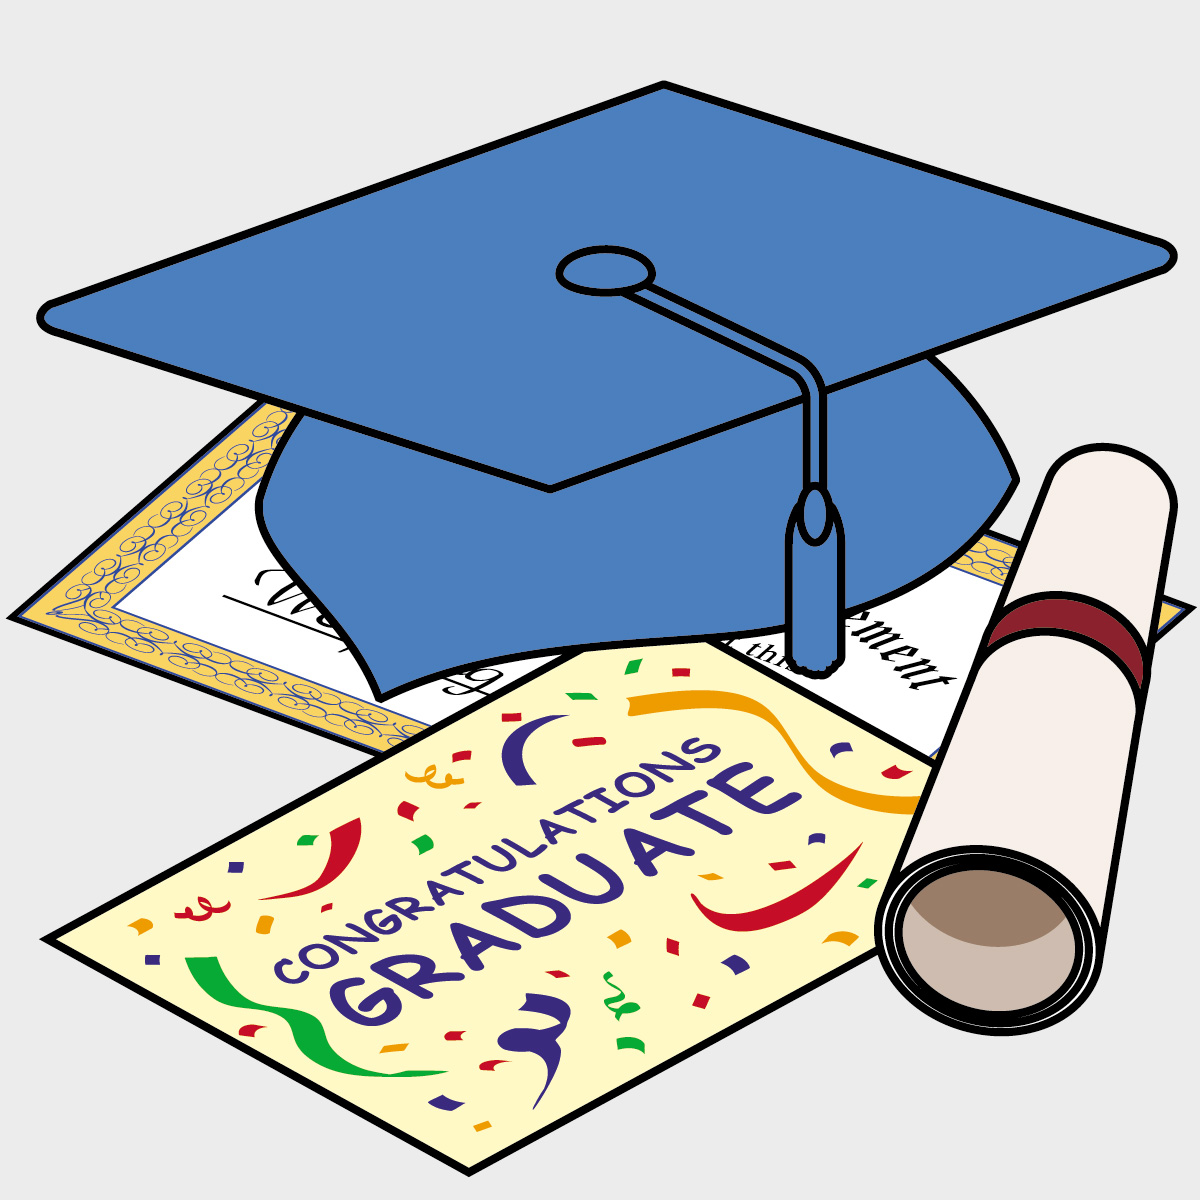 Preschool Graduation Characters Cartoon Images